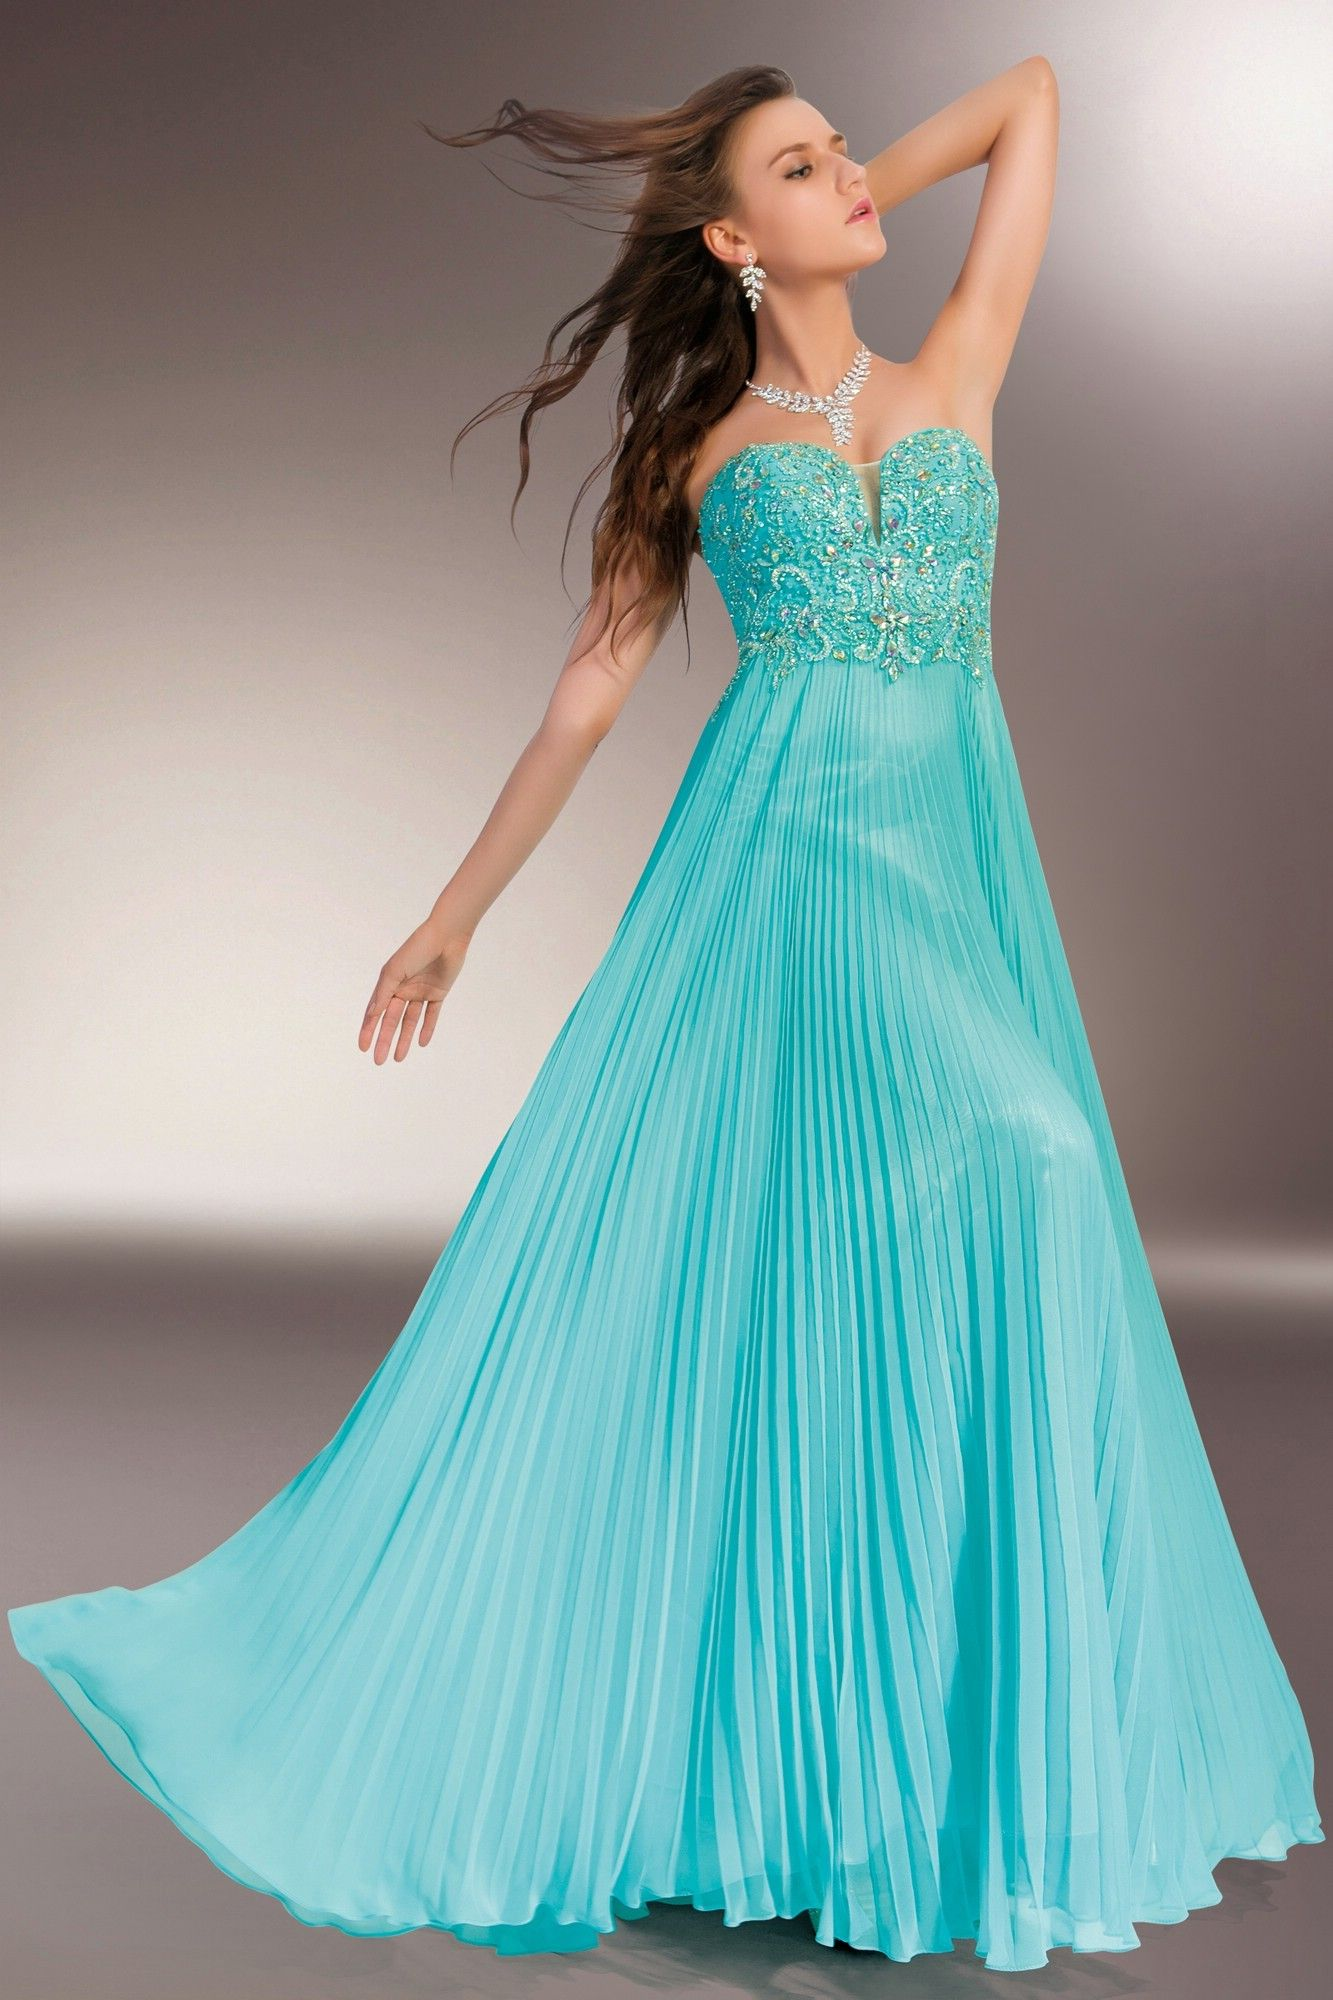 2Cute - Style 1411 #prom #homecoming #dresses | Prom & Homecoming ...